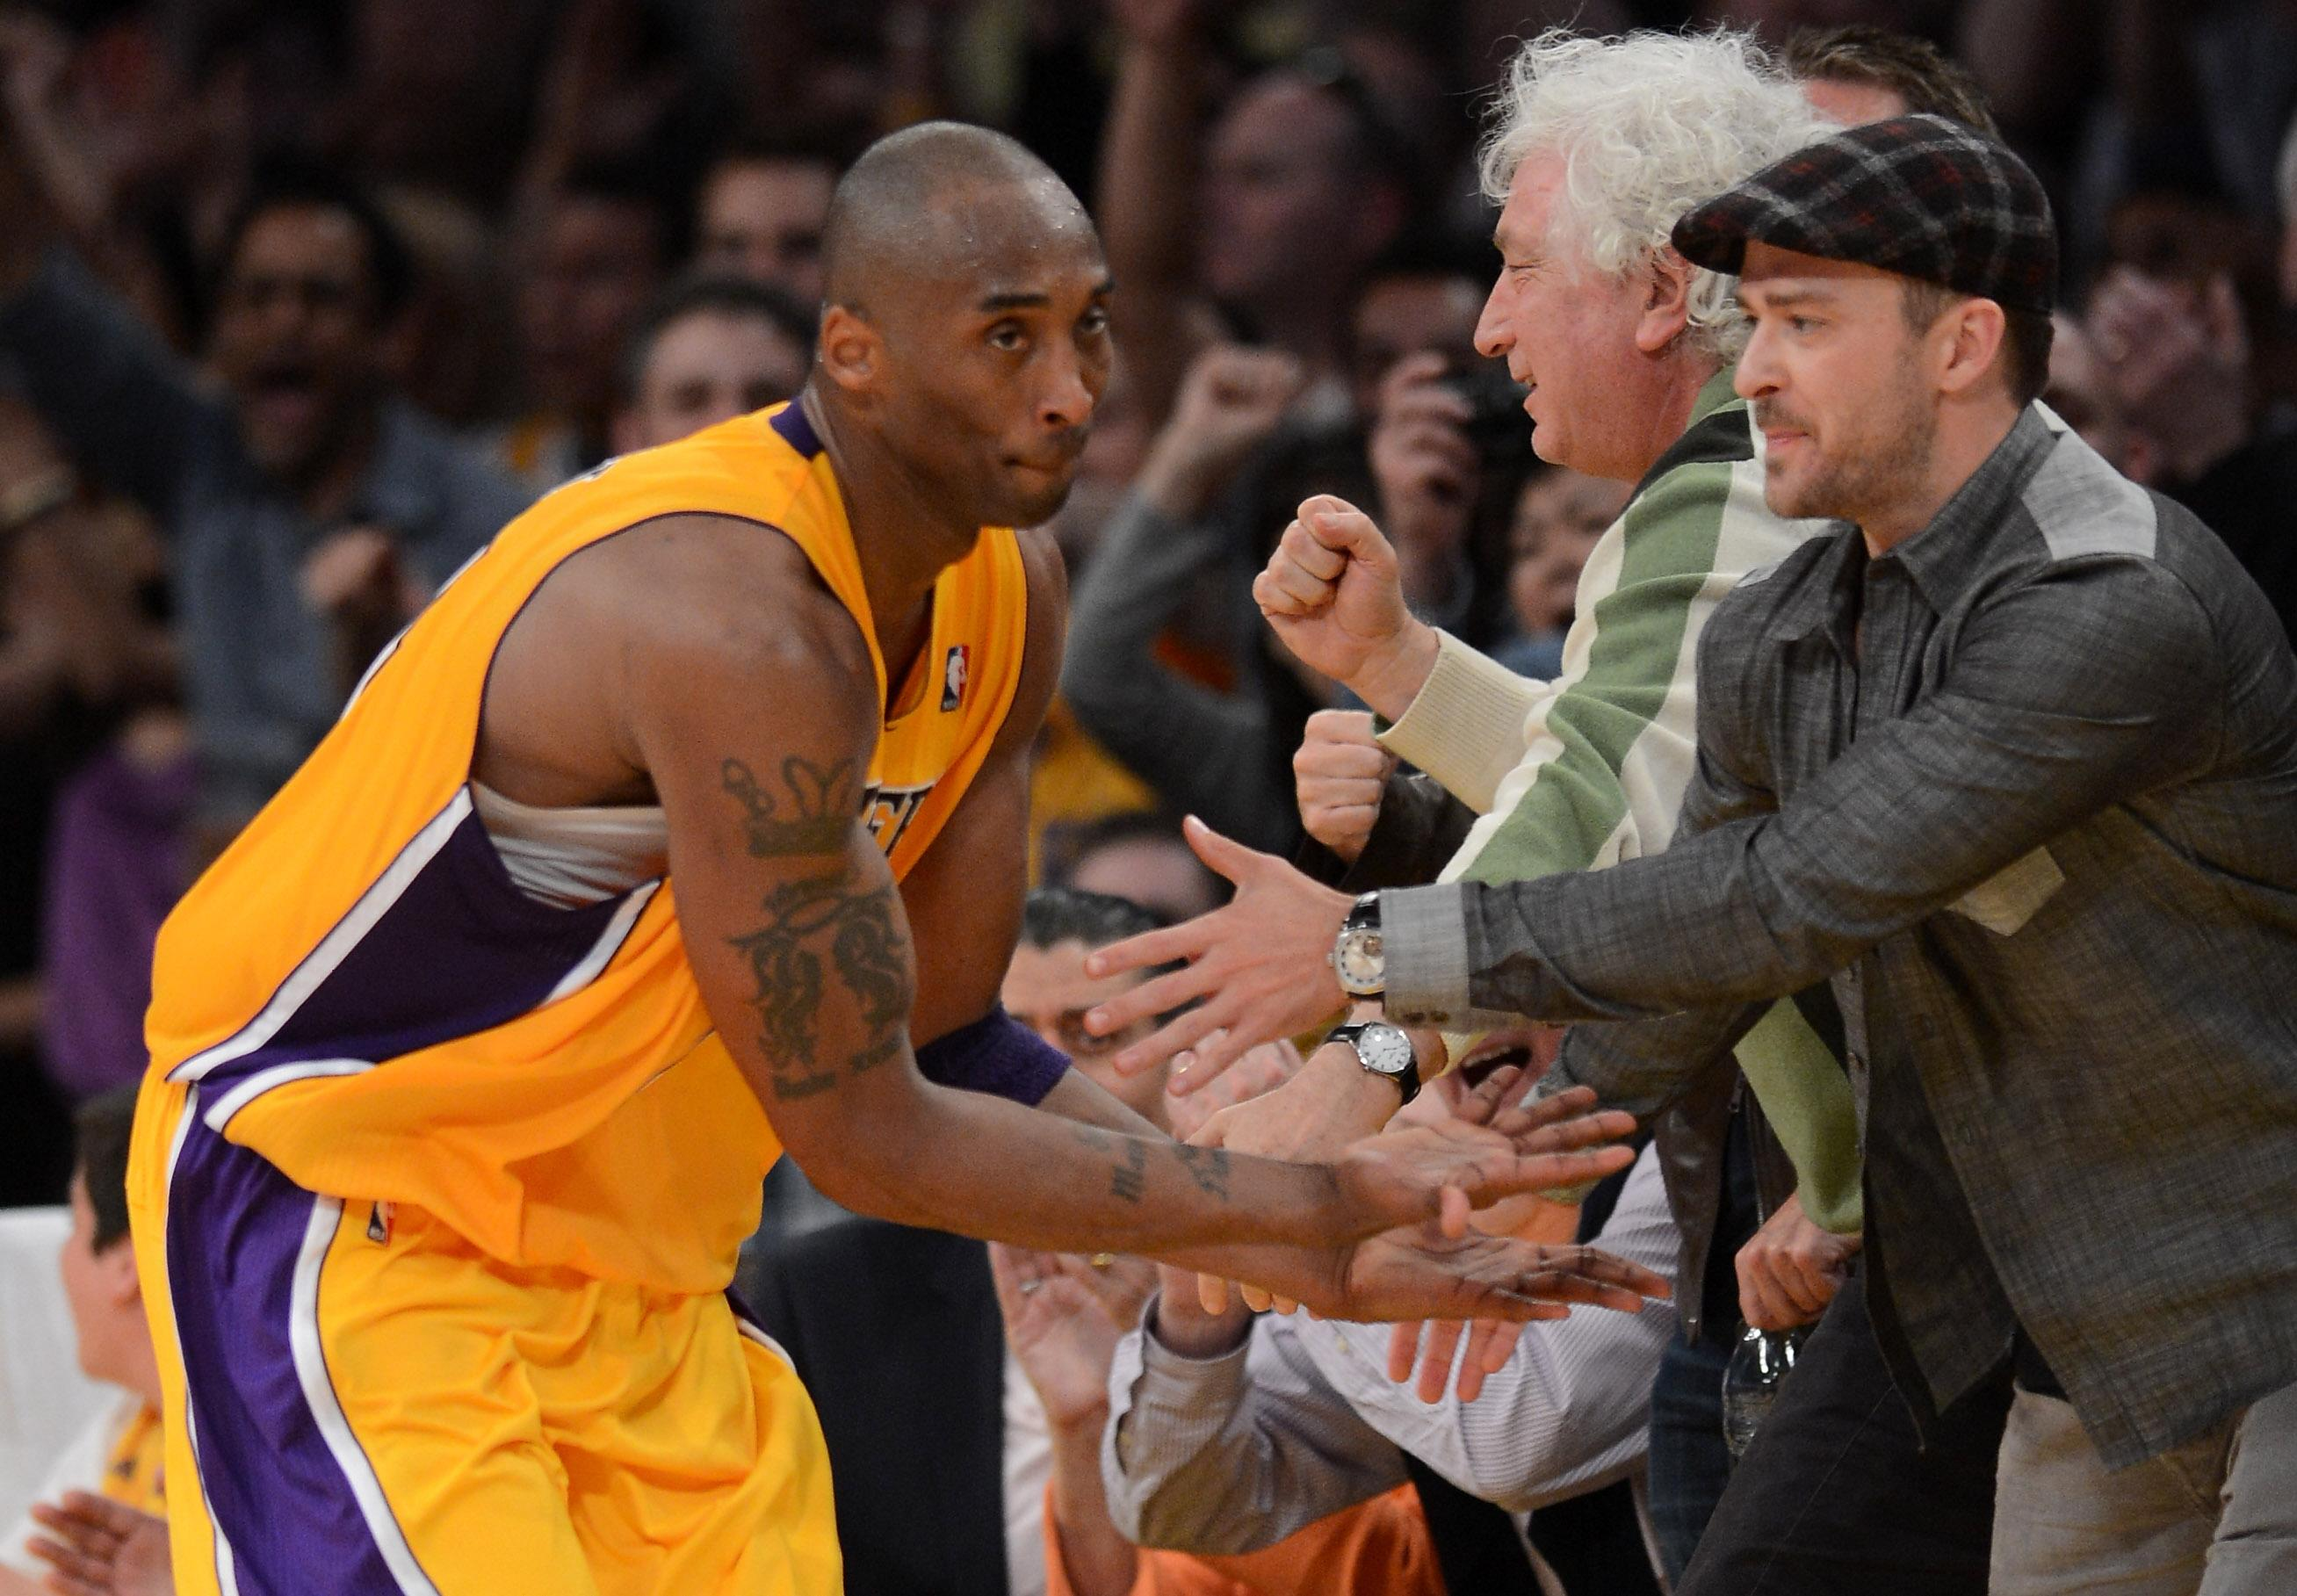 Justin Timberlake pays tribute to friend Kobe Bryant, recalling how they met as 'teenagers and bonded over our drive and process'